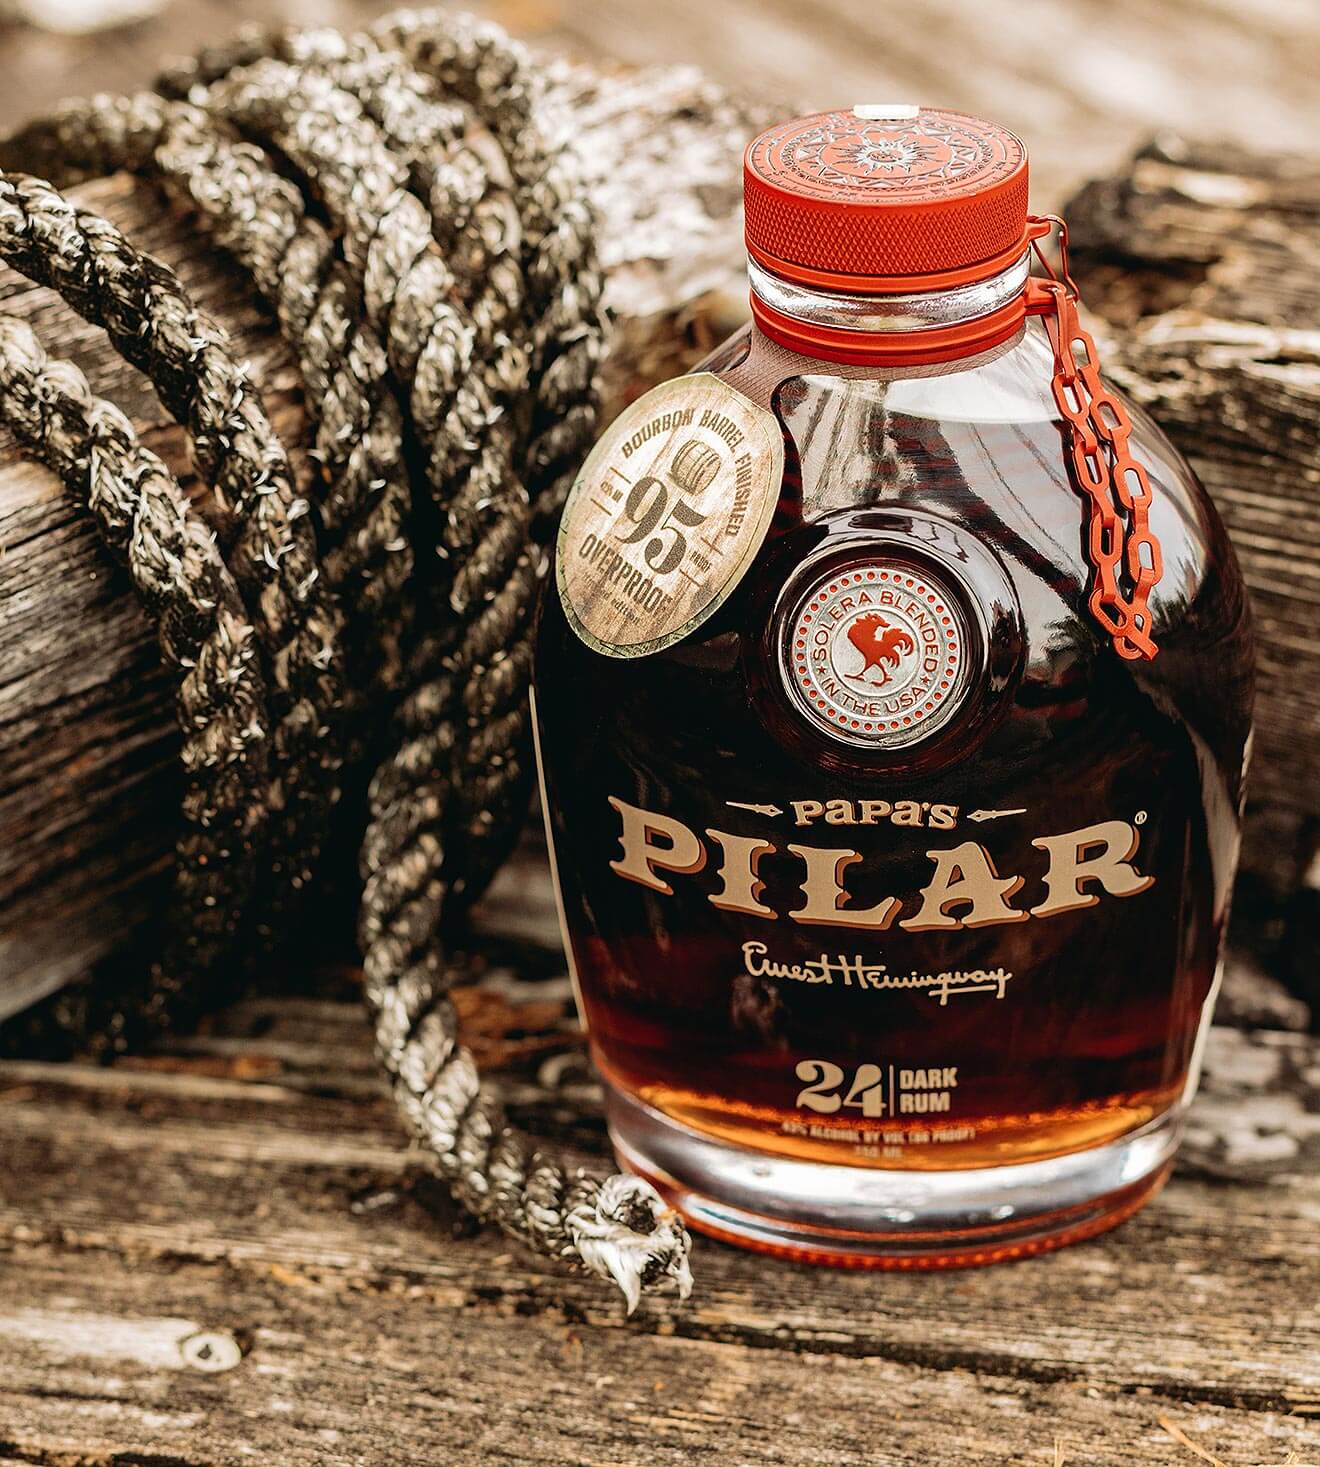 Papa's Pilar Limited Edition Bourbon Barrel Finished Dark Rum, bottle and rope decoration, wood table